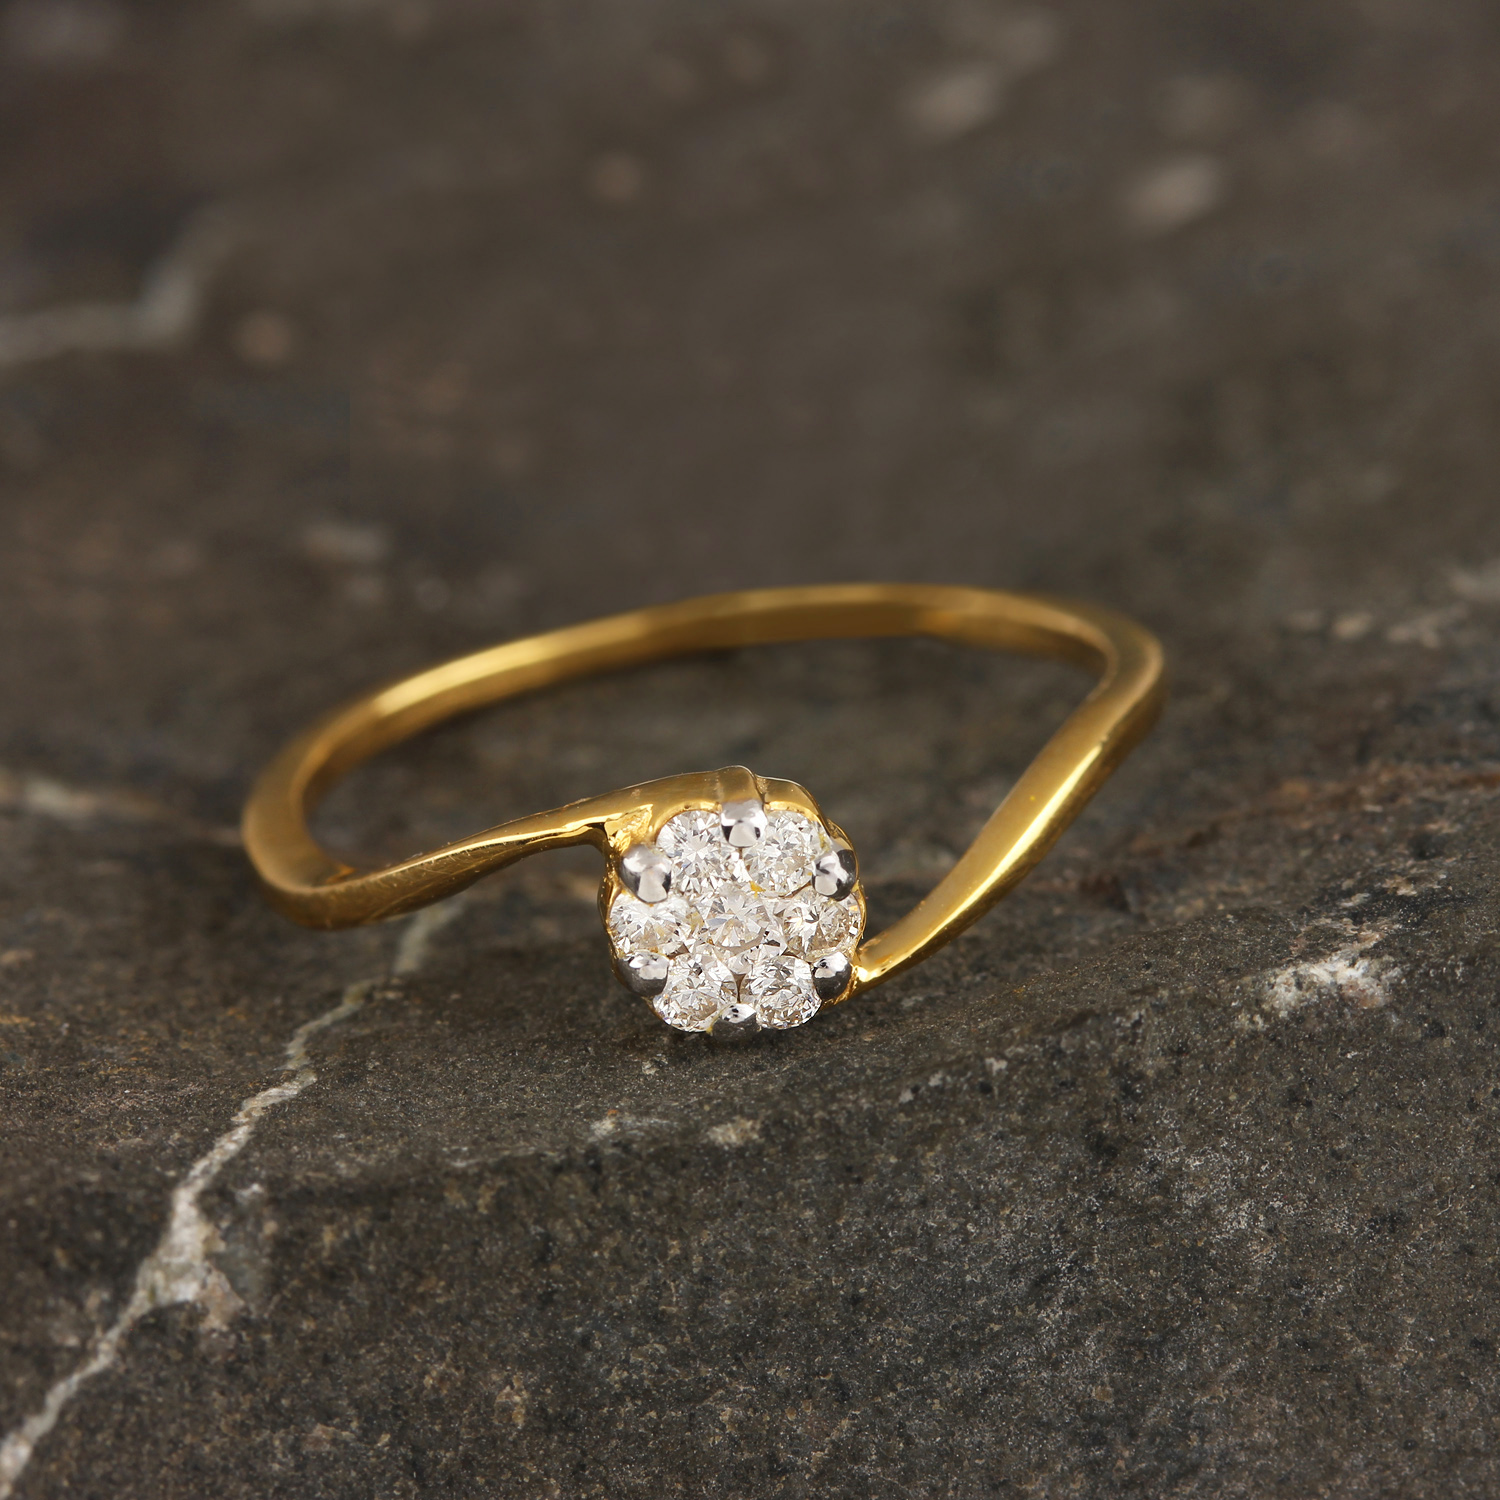 Gold Ring In Fower Design